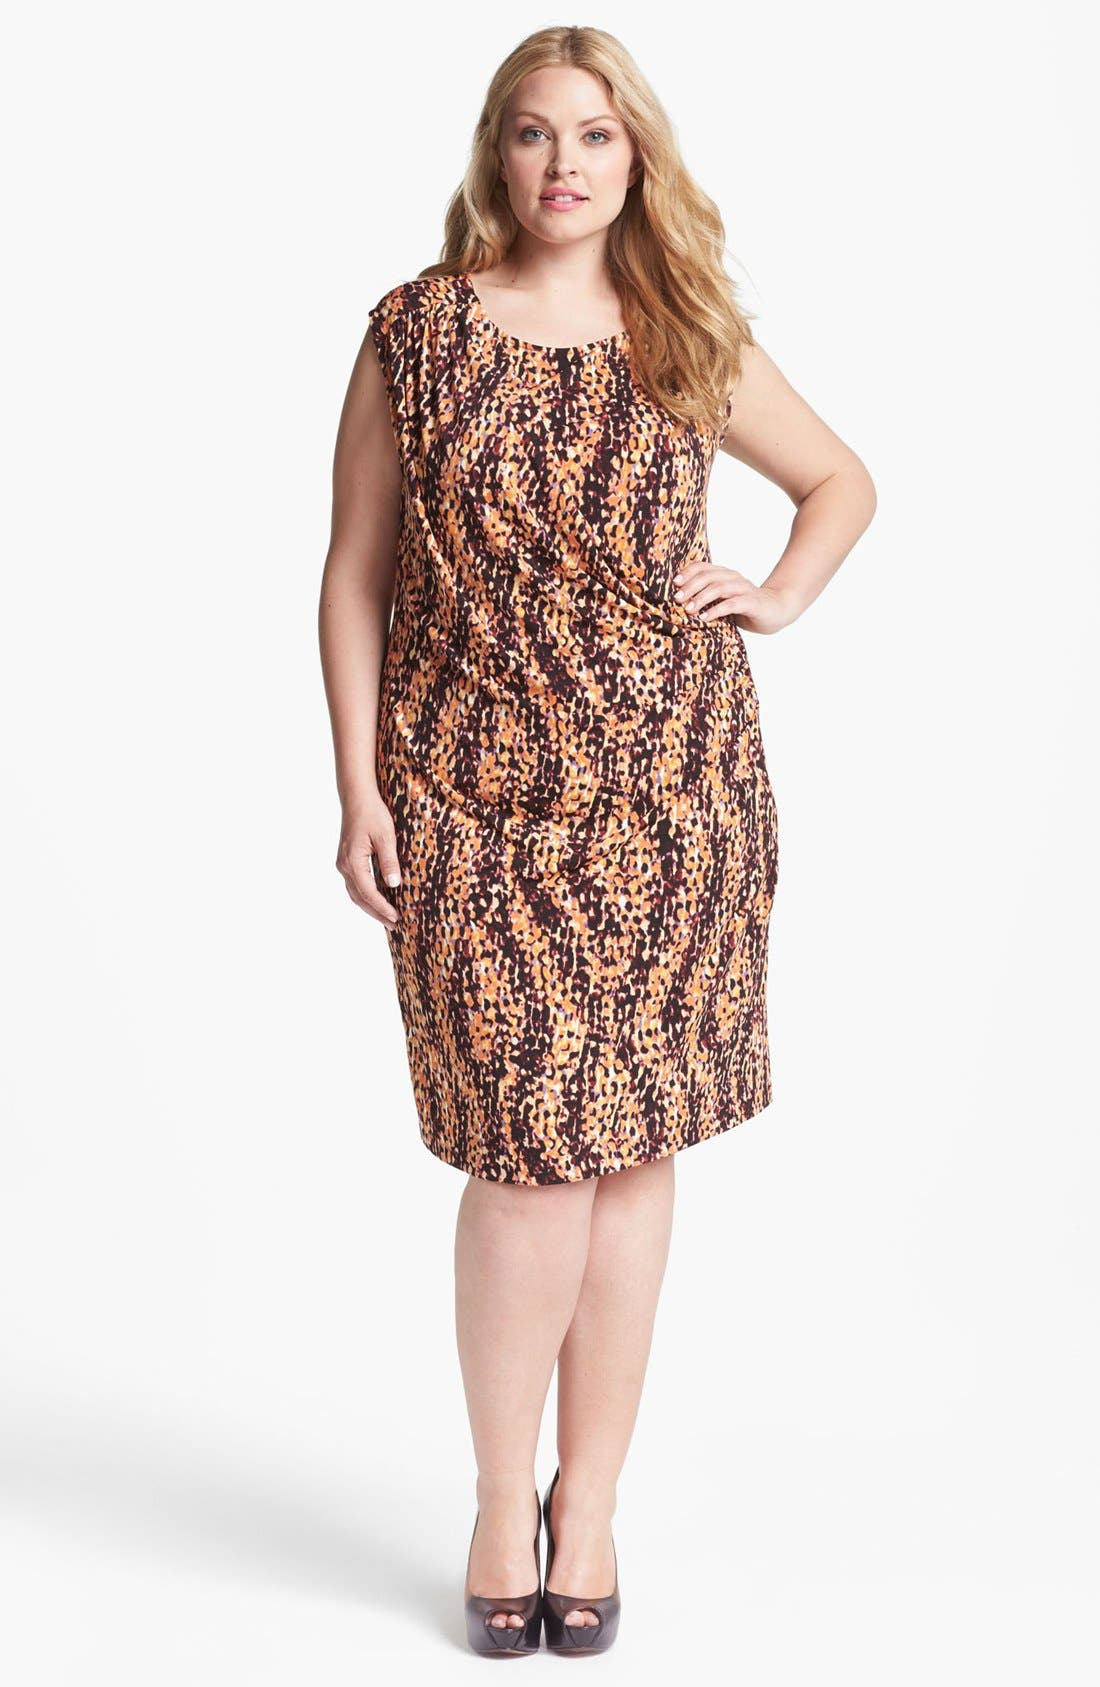 Alternate Image 1 Selected - Anne Klein Scale Print Jersey Dress (Plus Size)